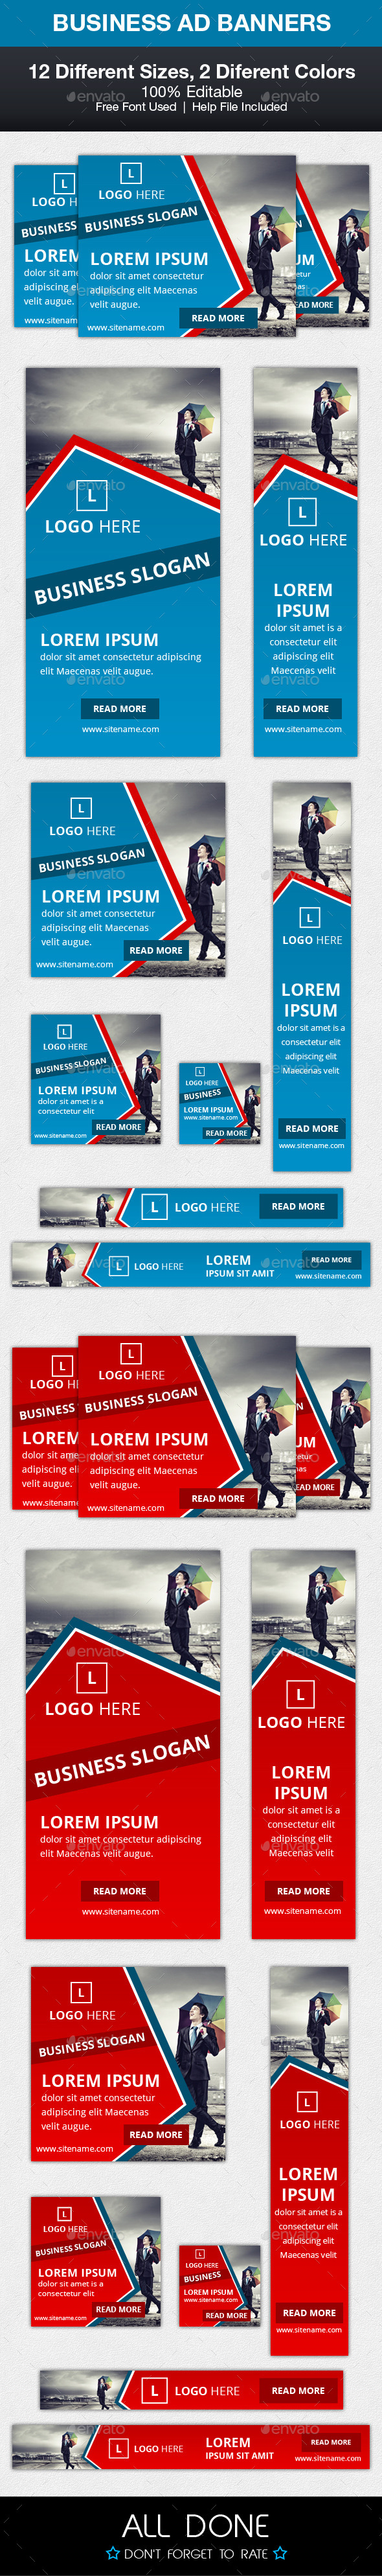 Business Ad Banners - Banners & Ads Web Elements